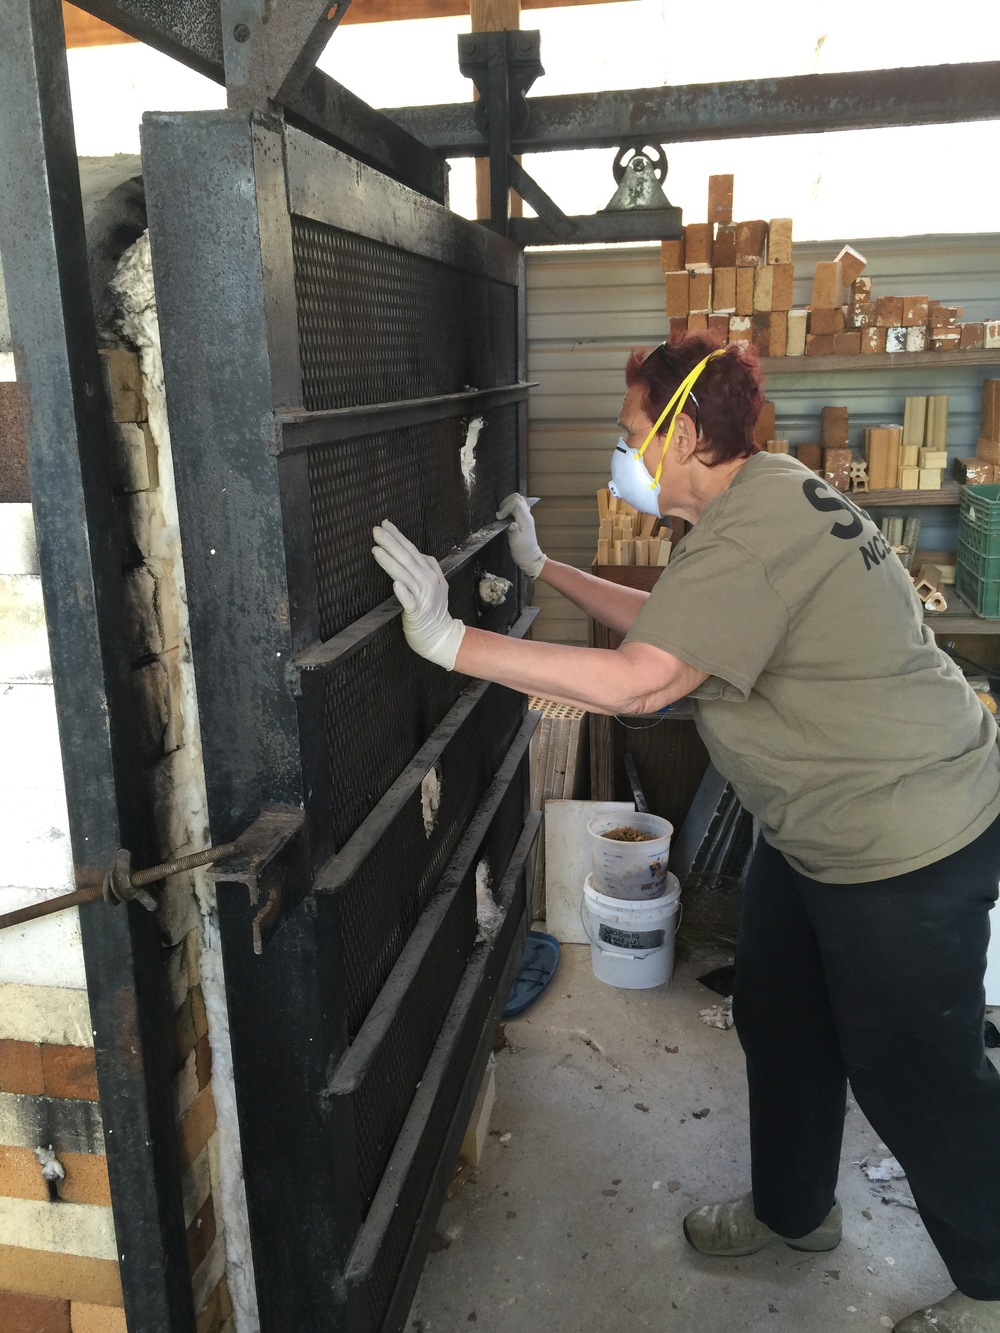 Lynn Isaacson at her New Prospect Pottery Studio. Her gas reduction kiln is brutal!